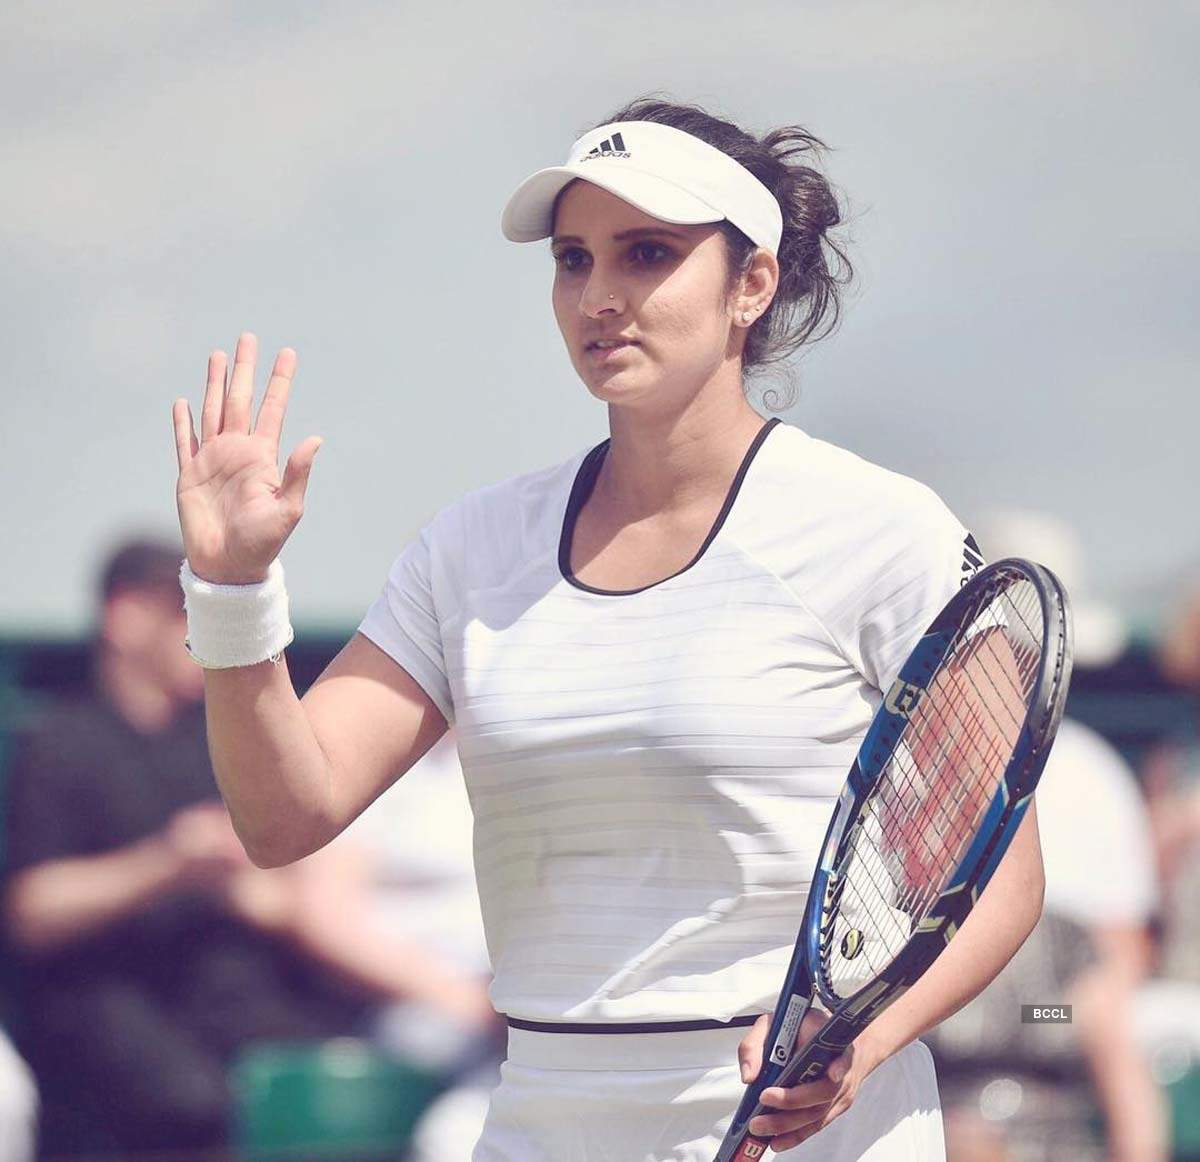 Sania Mirza donates Fed Cup Heart award prize money to CM's Relief Fund to fight covid-19